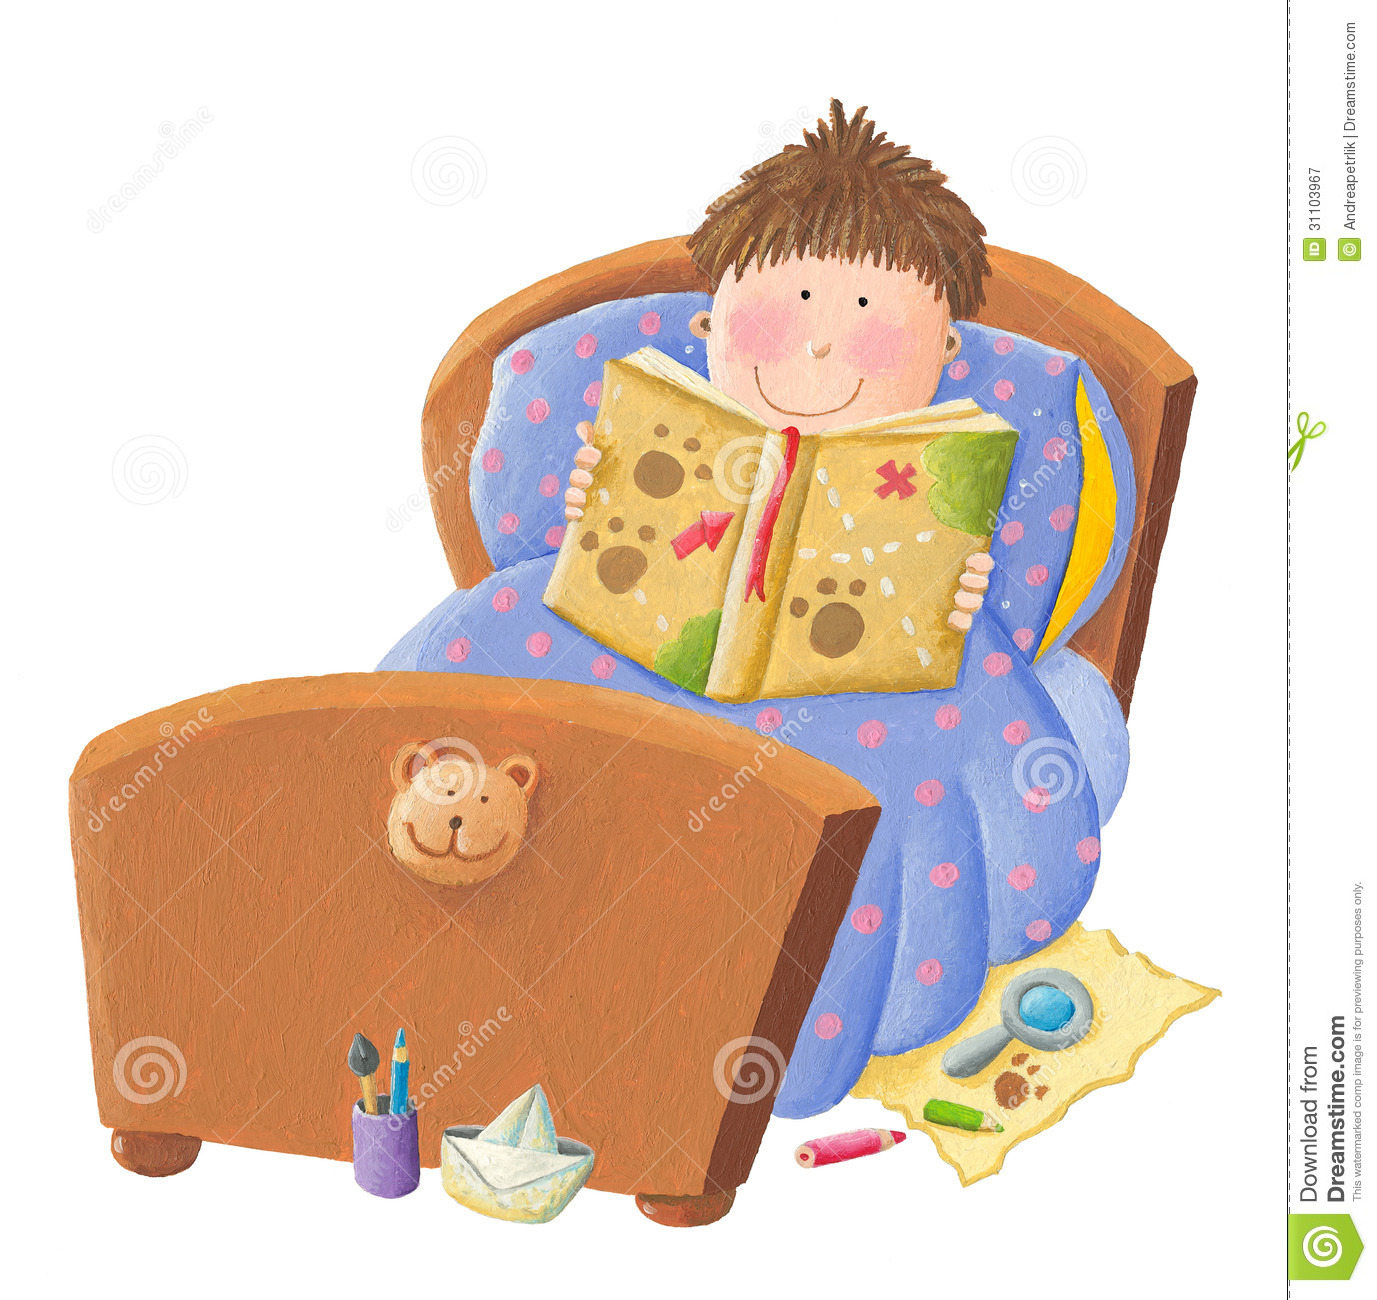 Uncategorized A Bed Time Story boy reading bed time story royalty free stock photography image 31103967